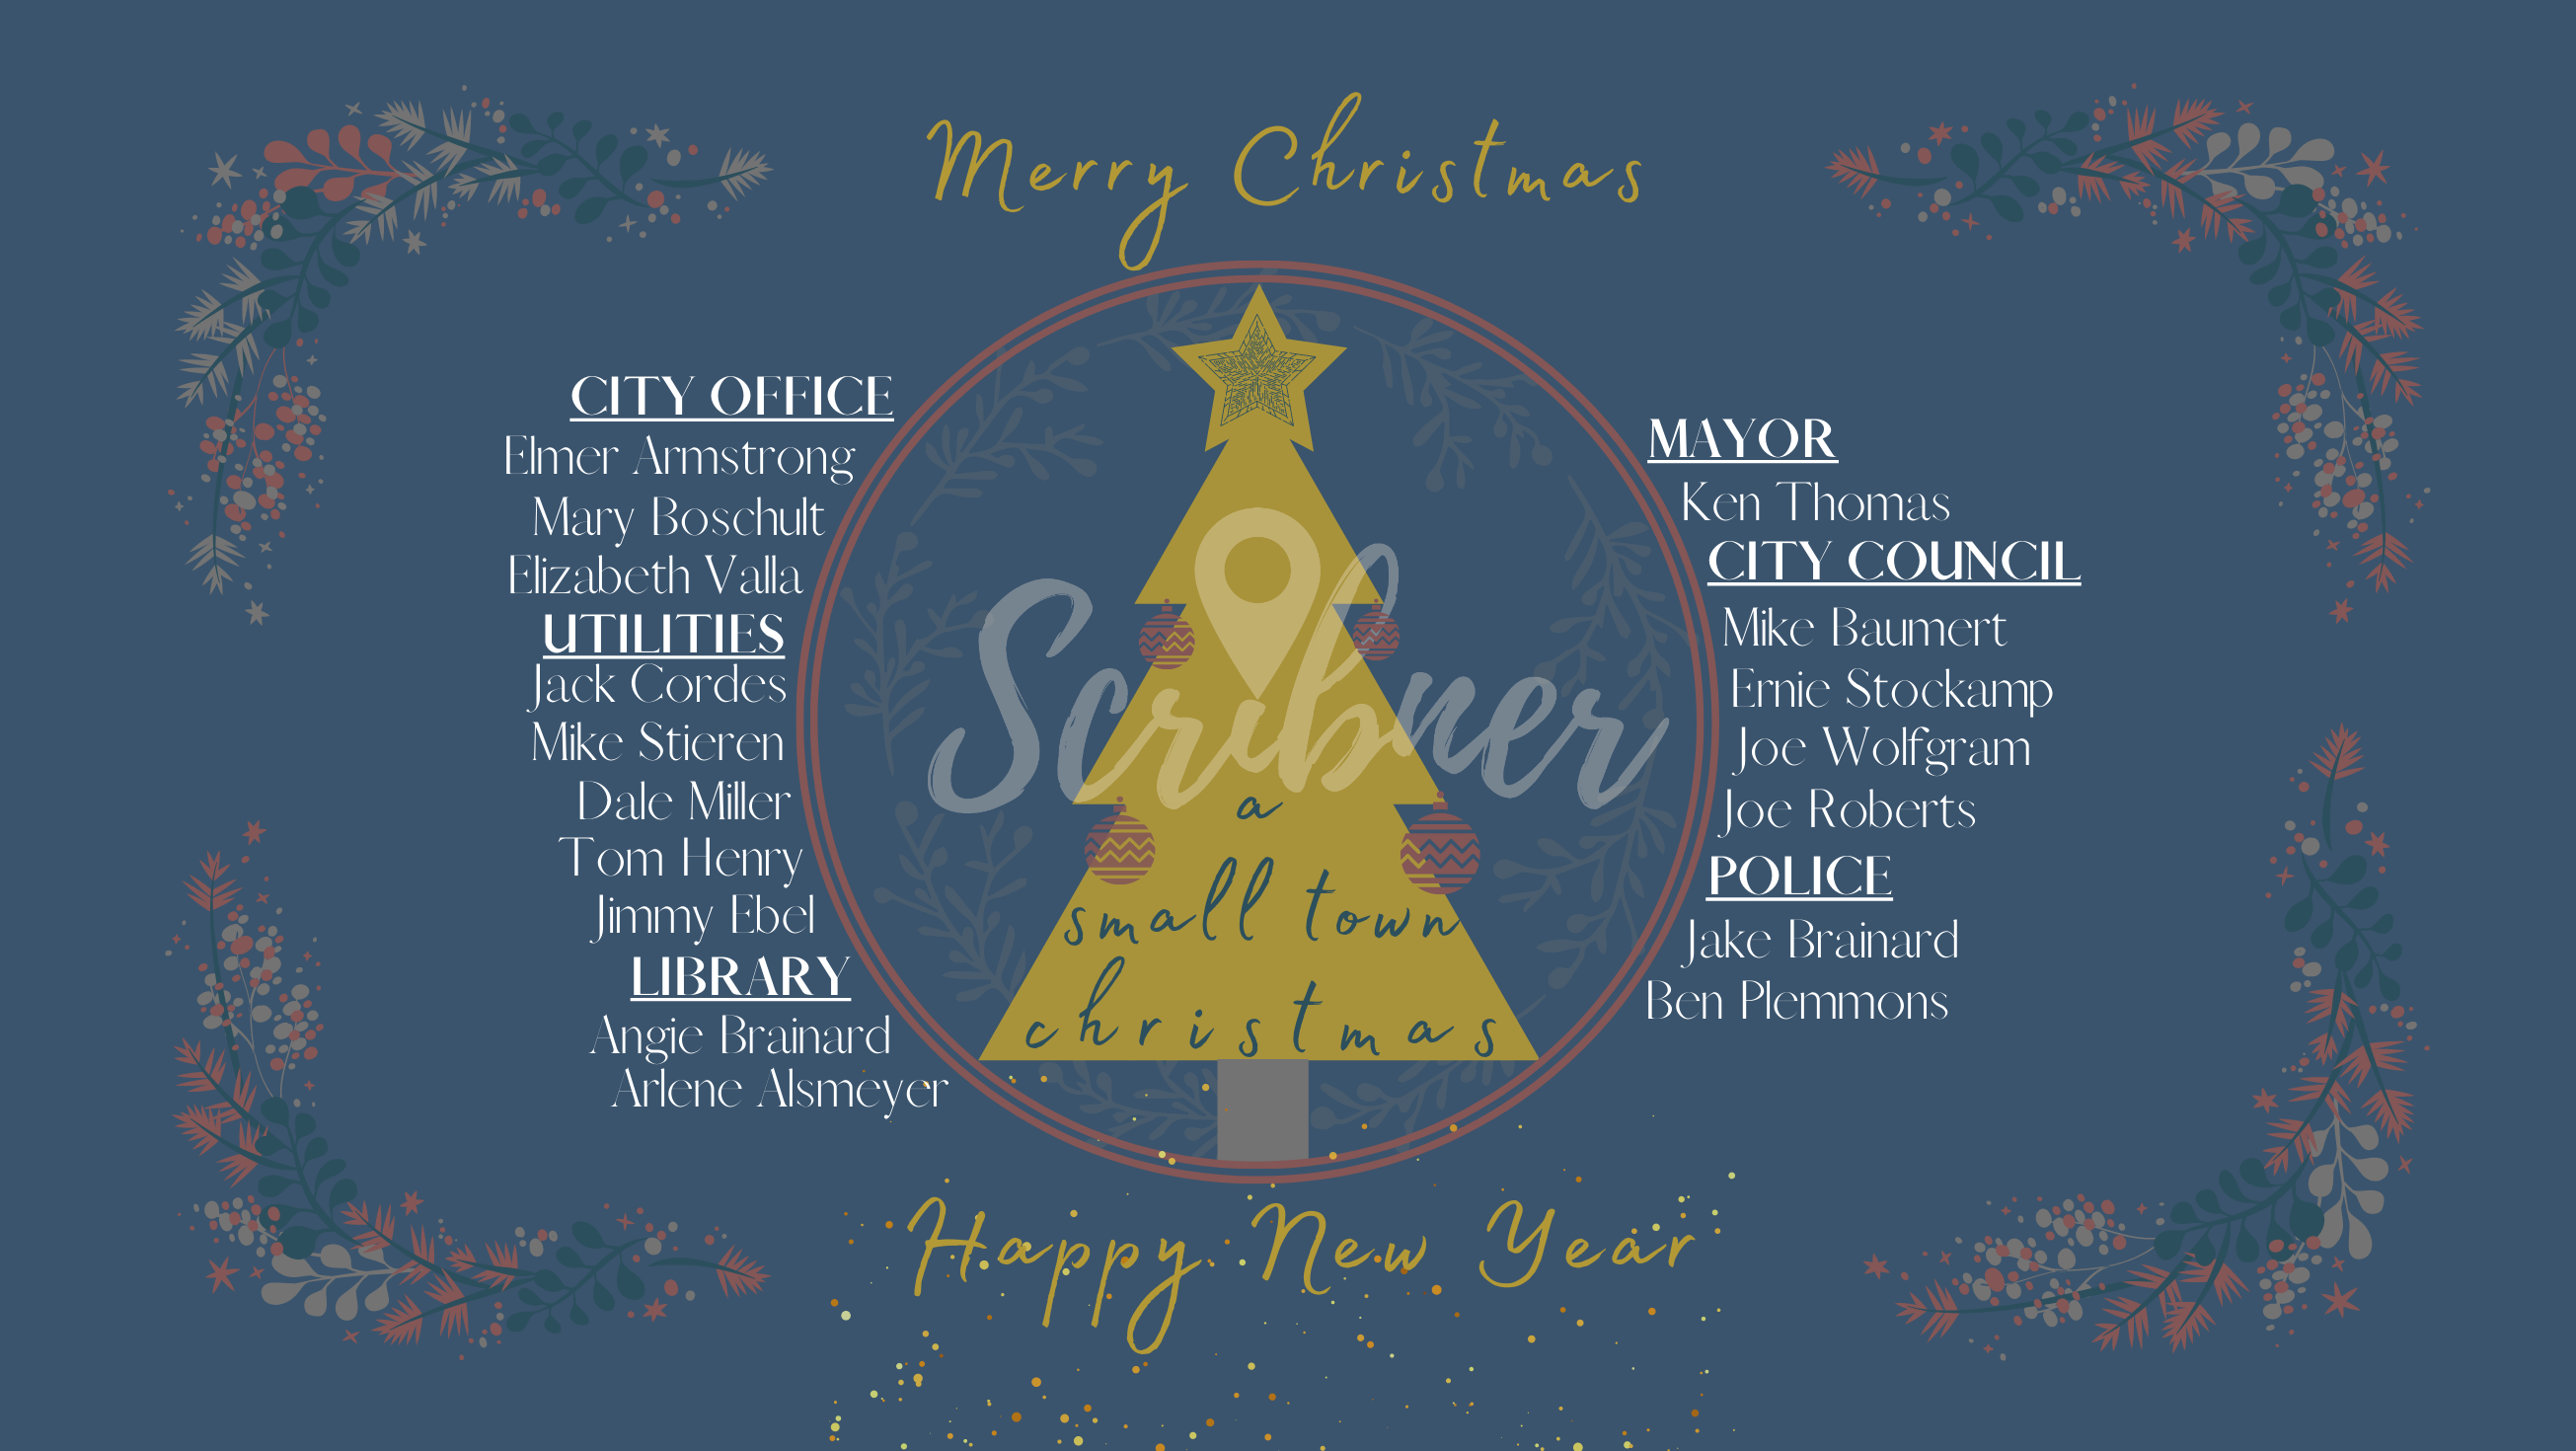 Merry Christmas & Happy New Year from the City of Scribner